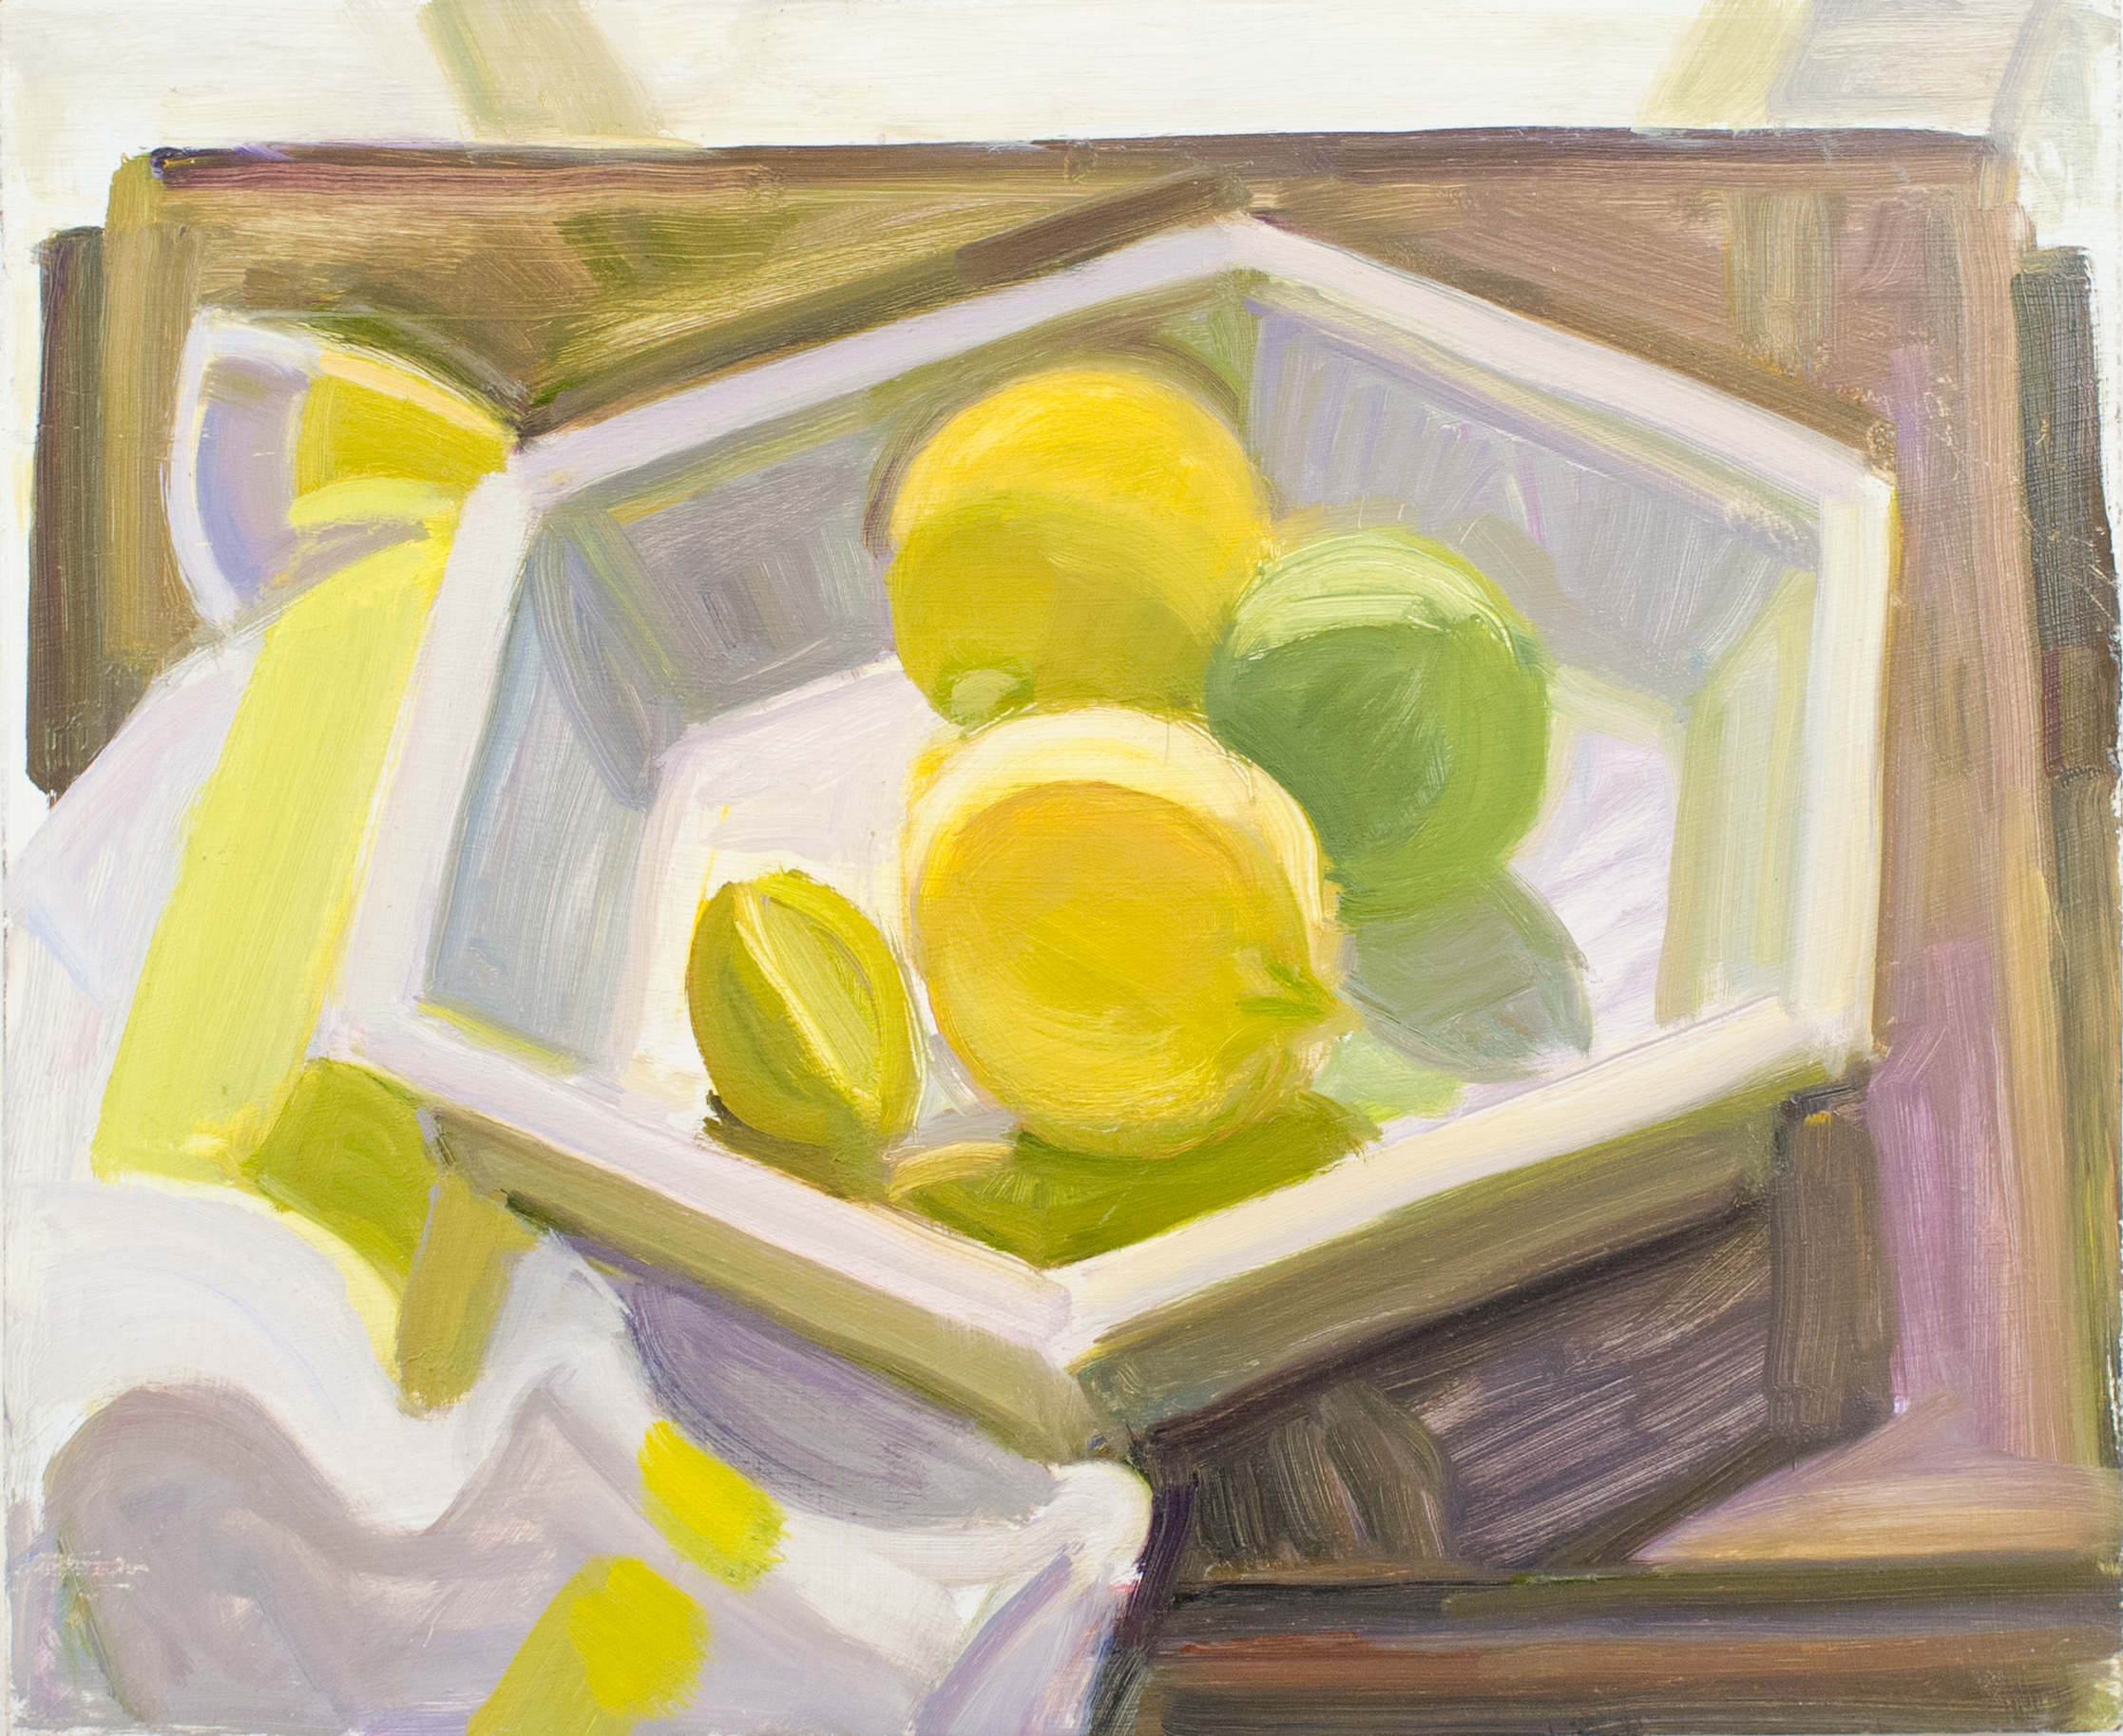 """Hexagonal Pie Plate w/Lemons and Lime, Yellow Striped Napkin, oil on panel, 10""""x12"""""""